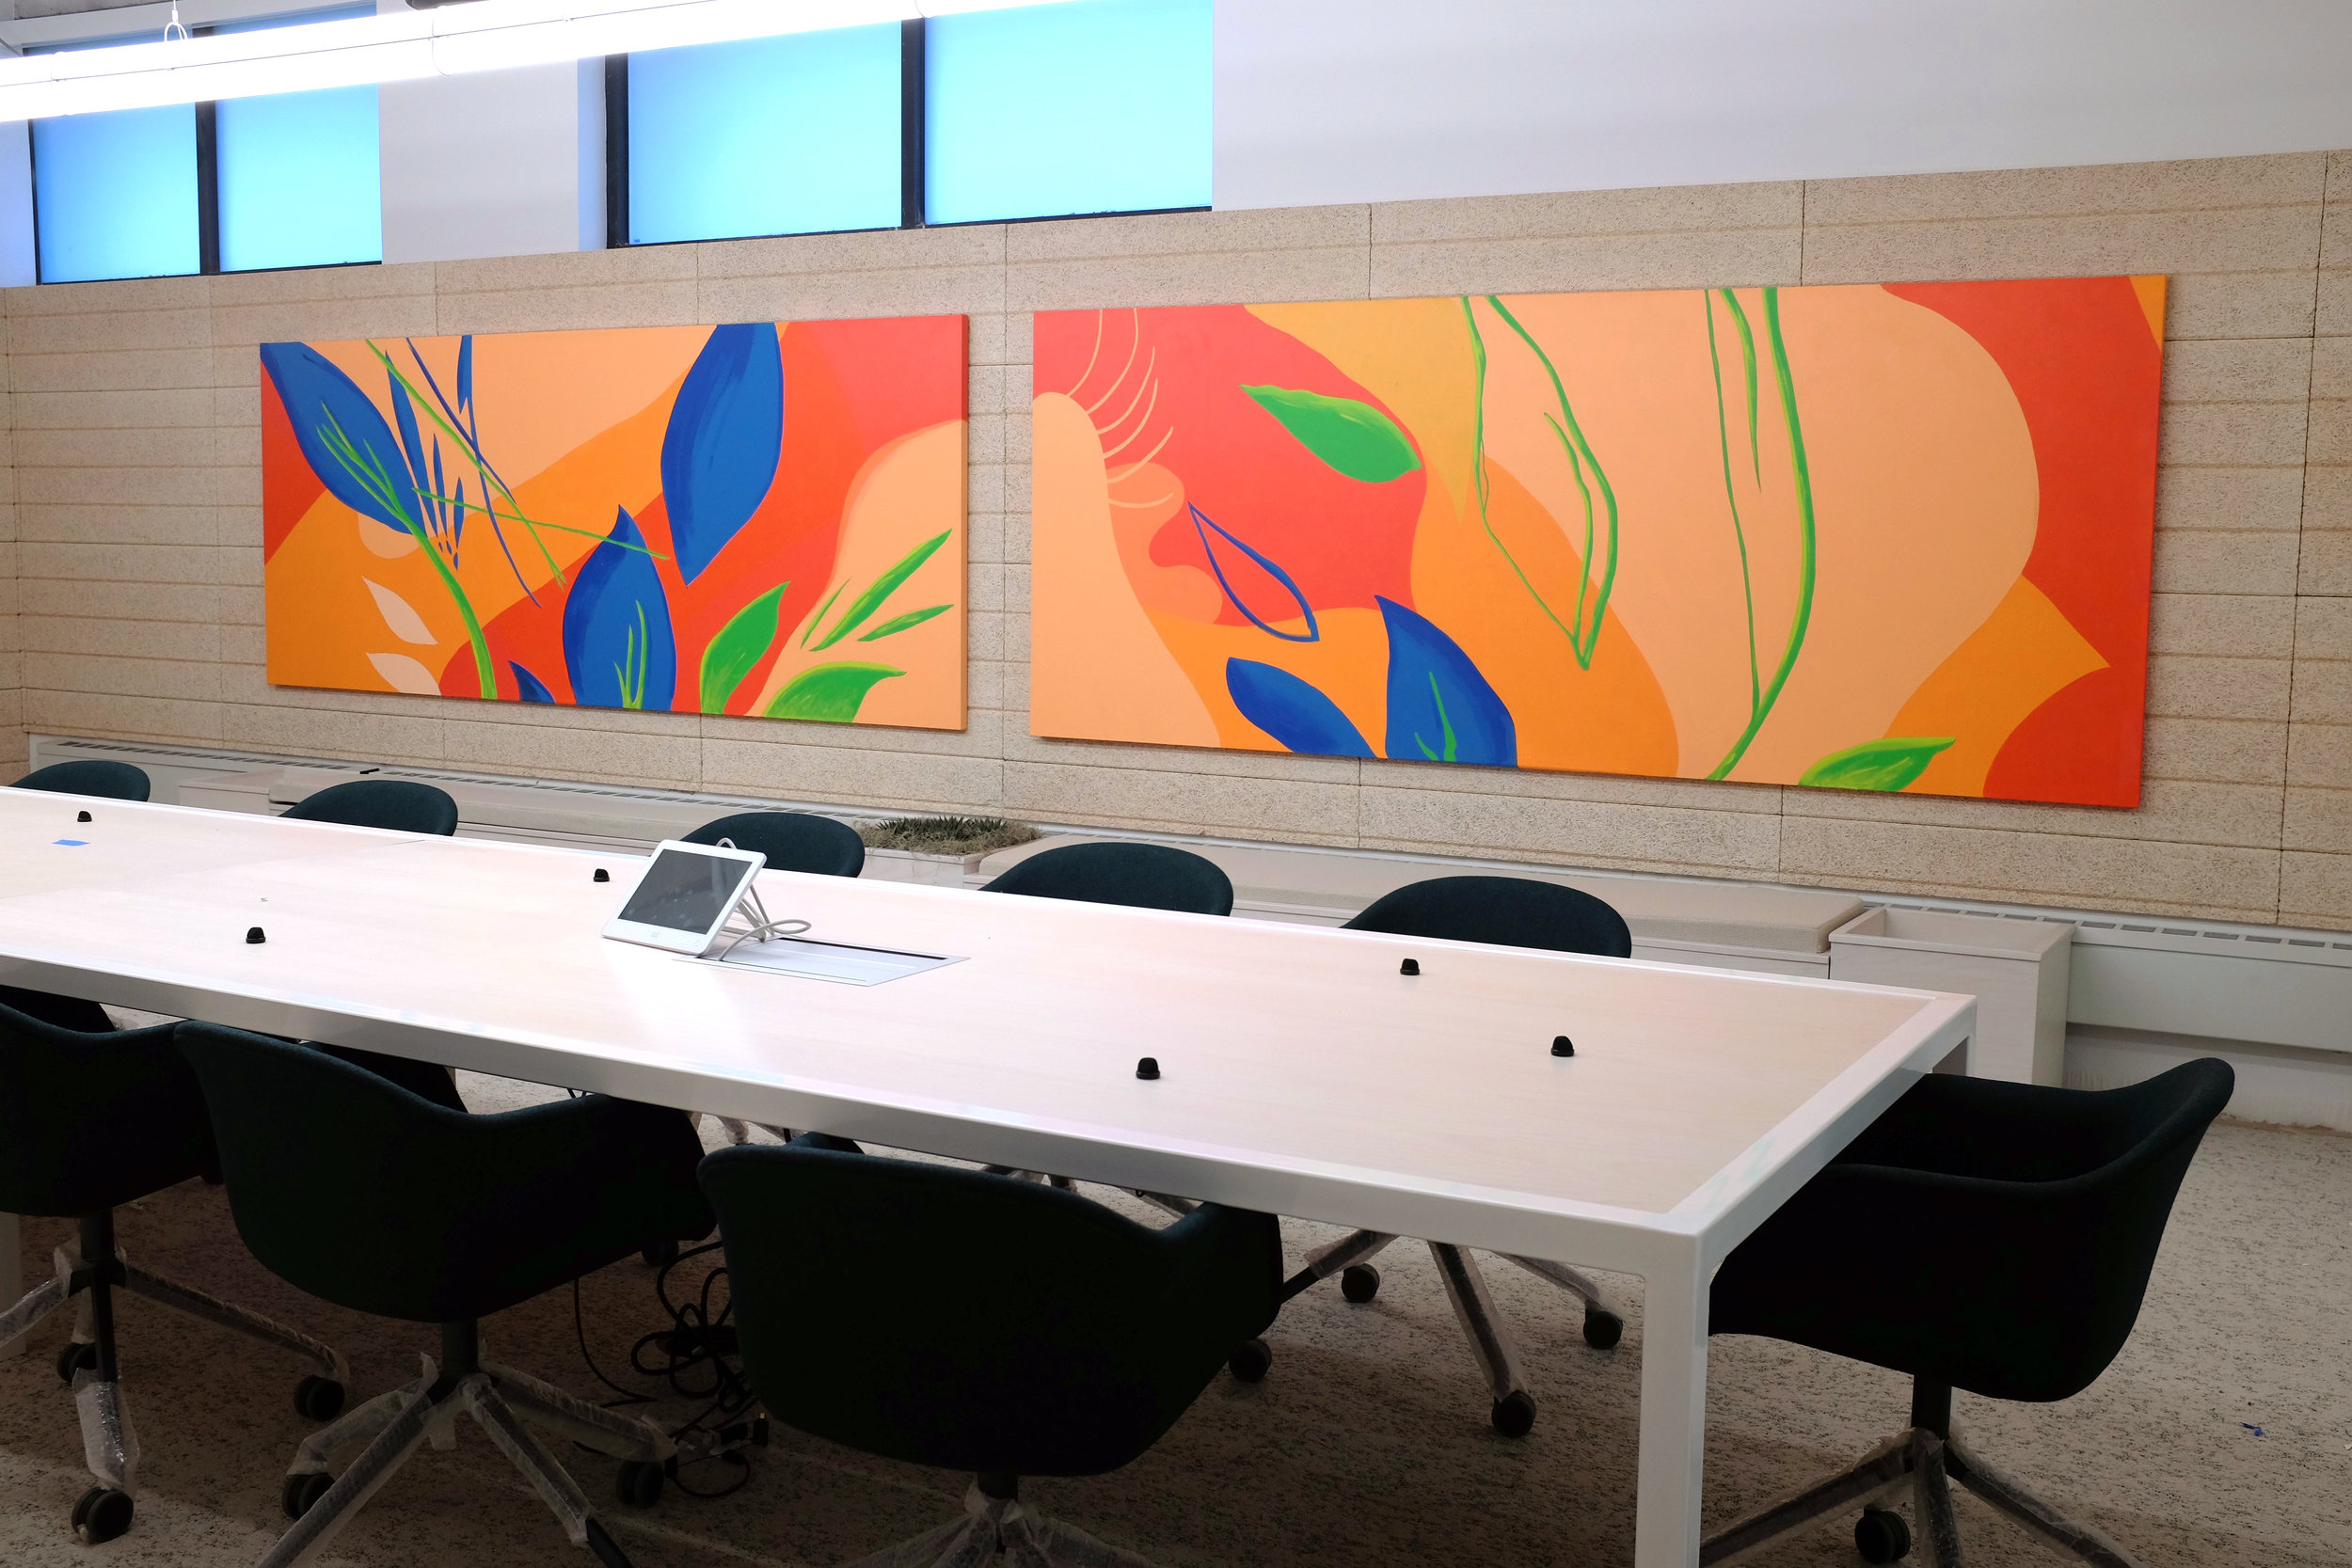 PHYSICAL INSTALLATIONS IN MEETING ROOM